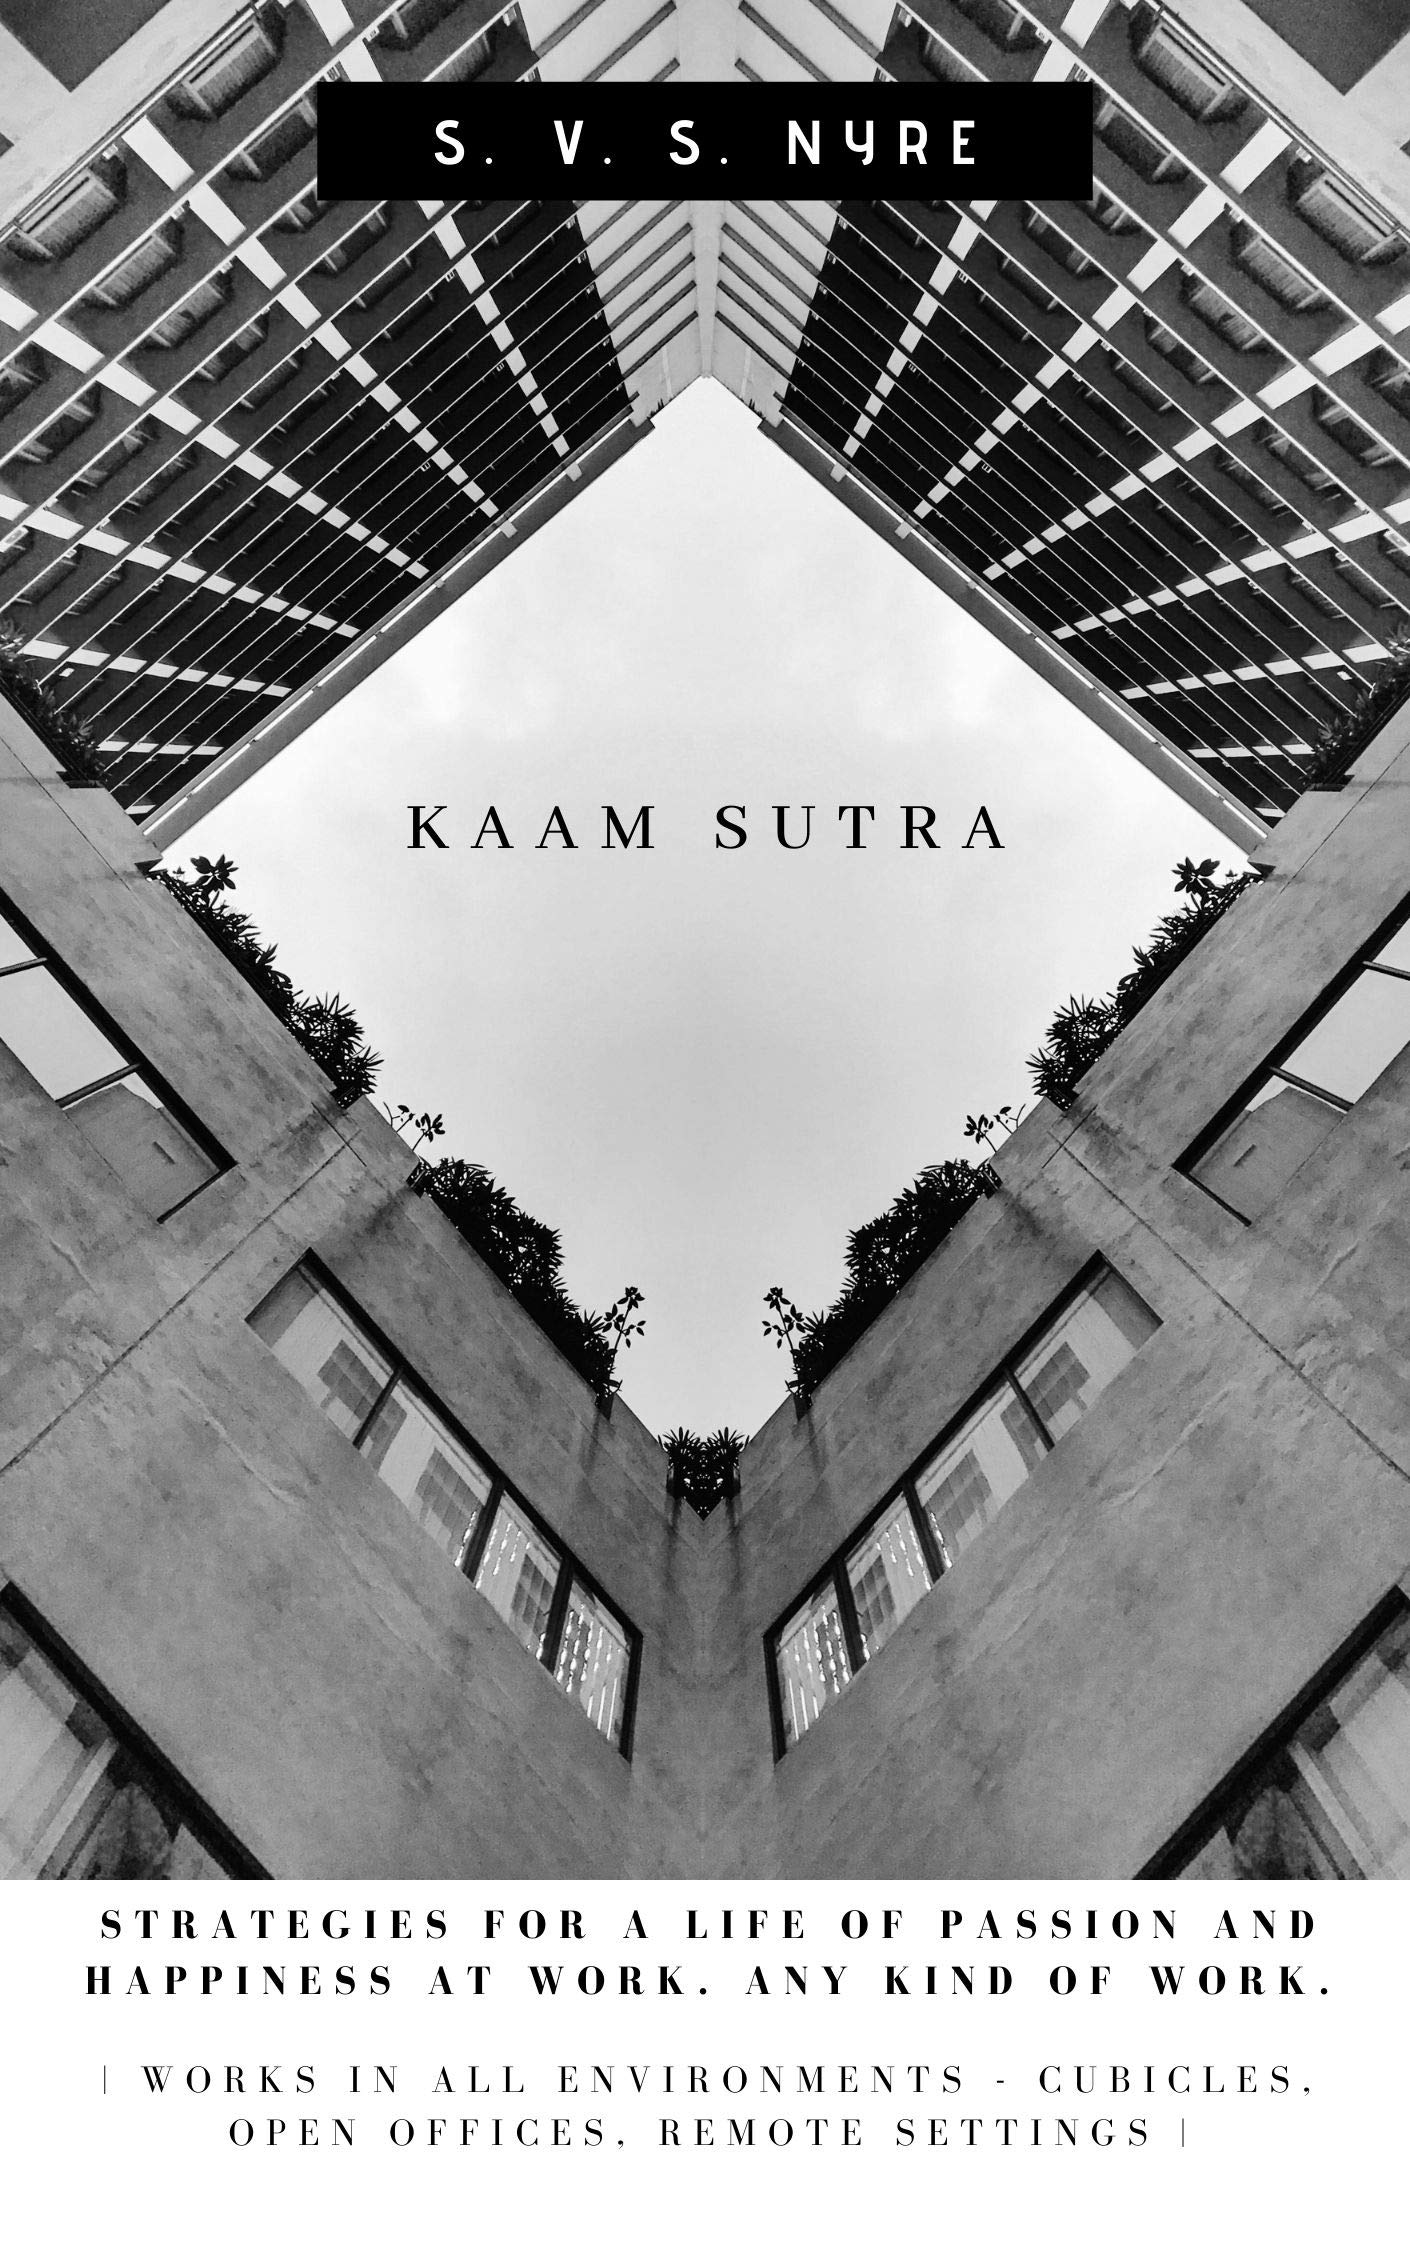 Kaam Sutra: Strategies for a Life of Passion and Happiness at Work. Any Kind of Work.